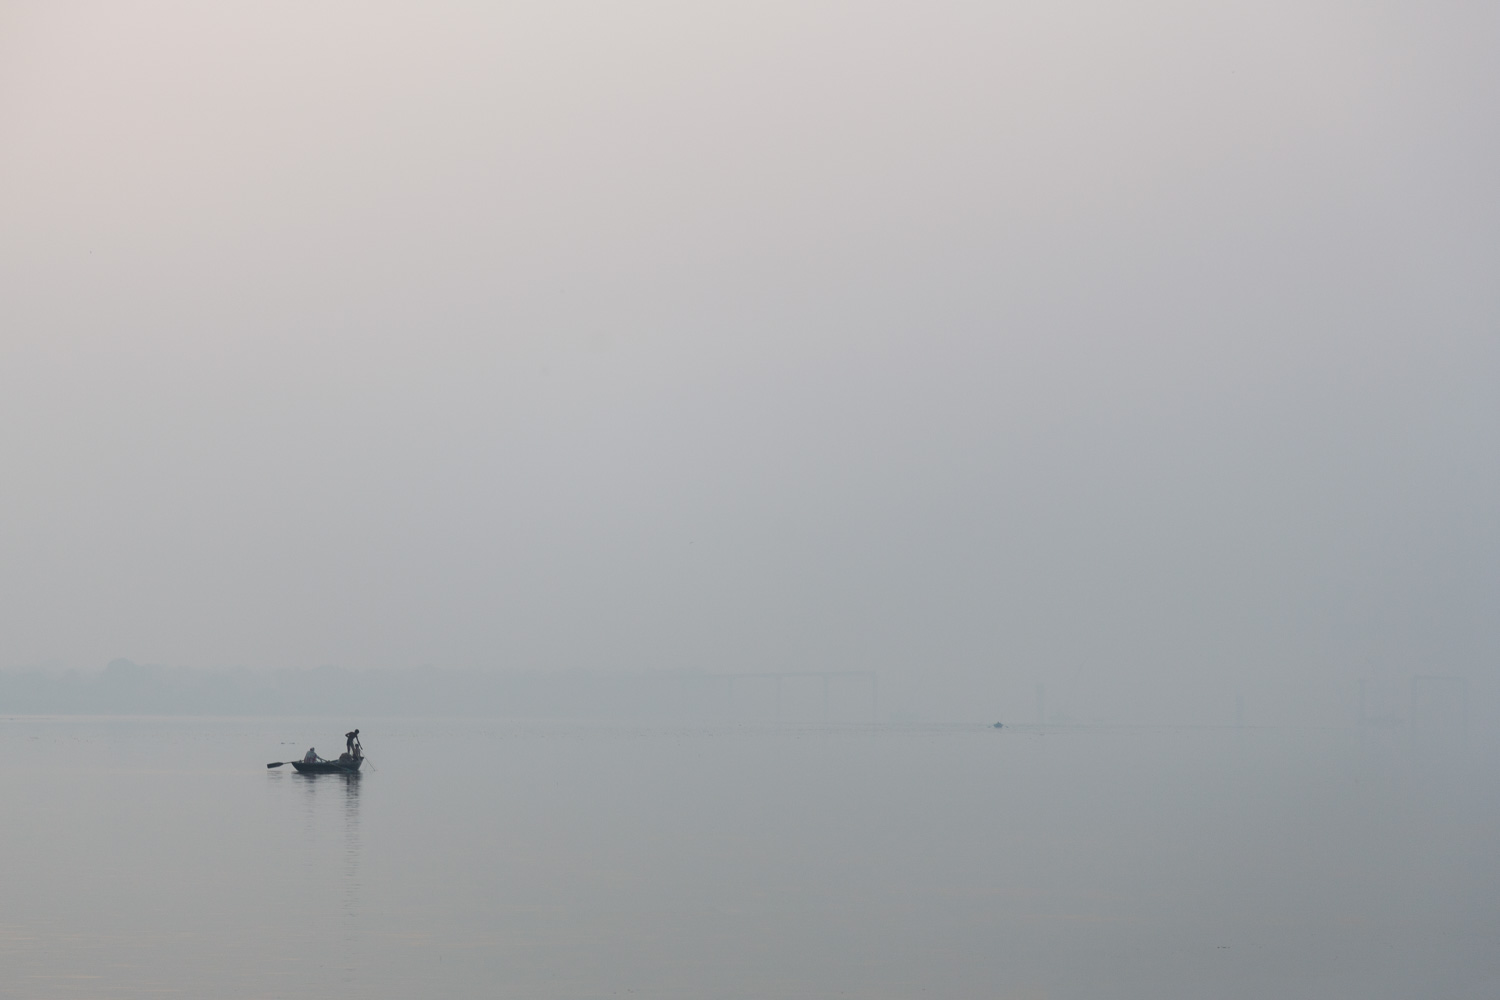 Fishermen on the Ganges in Varanasi - Copyright: Daniel Hofmann